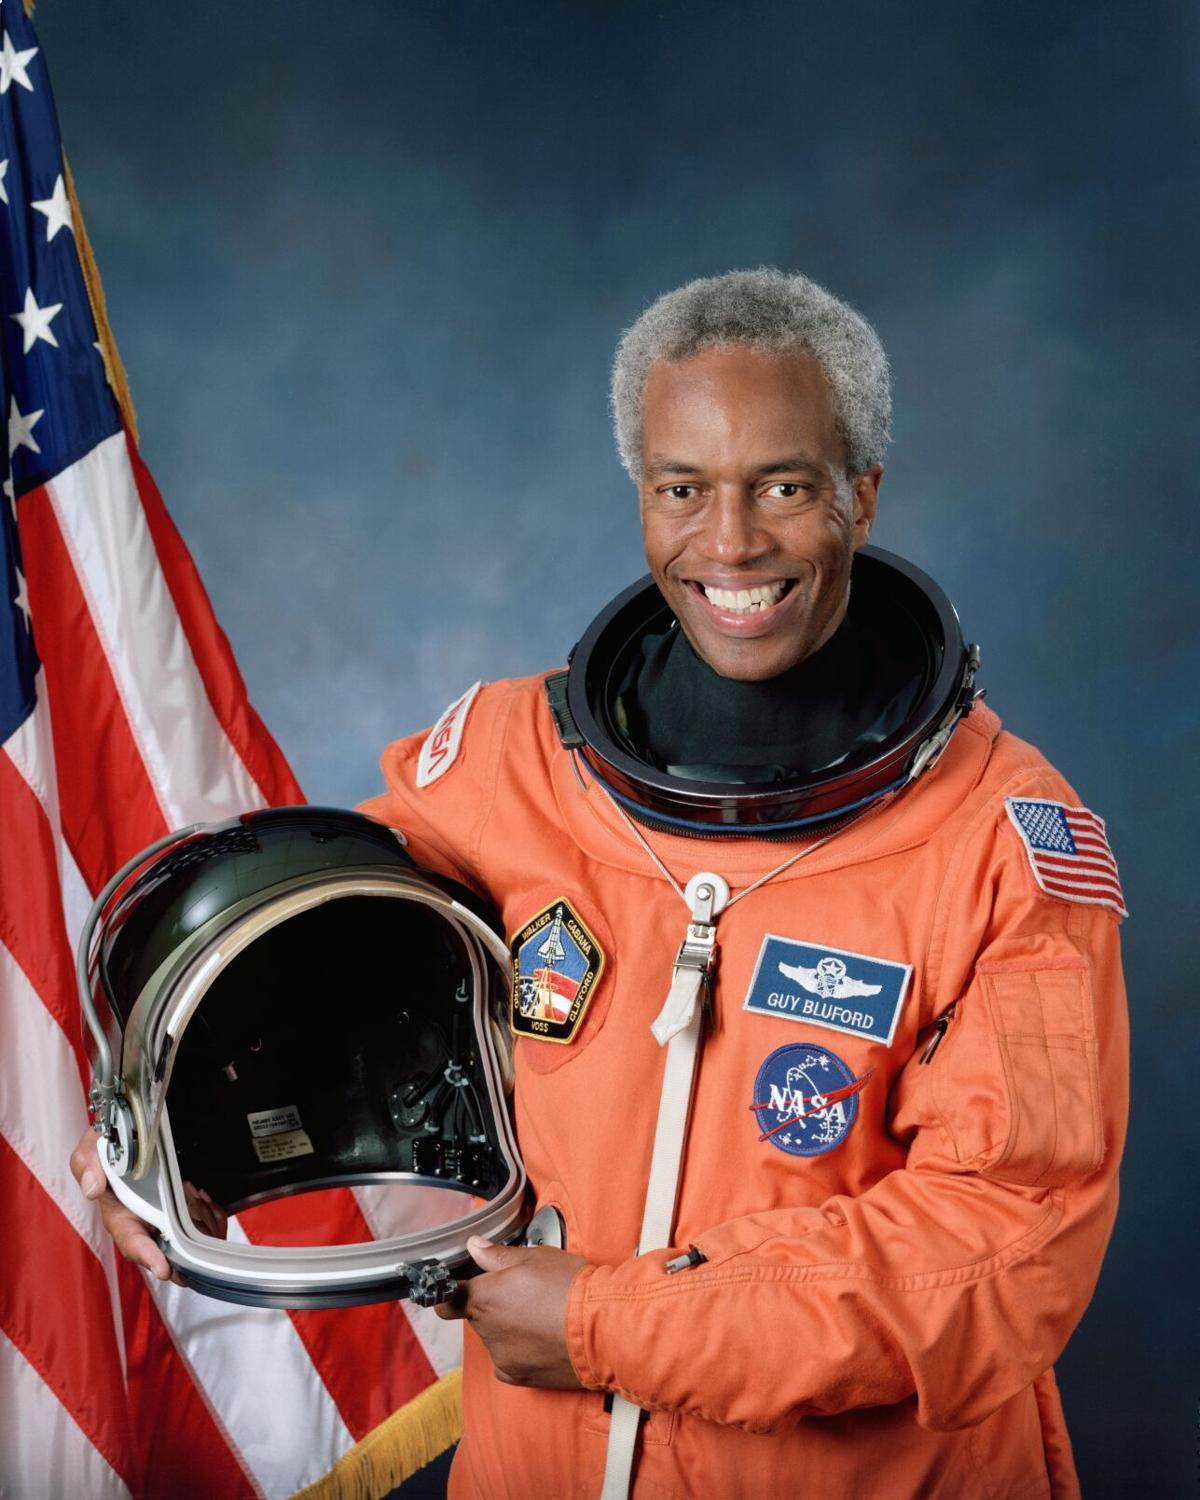 Guion Bluford, first Black American in space